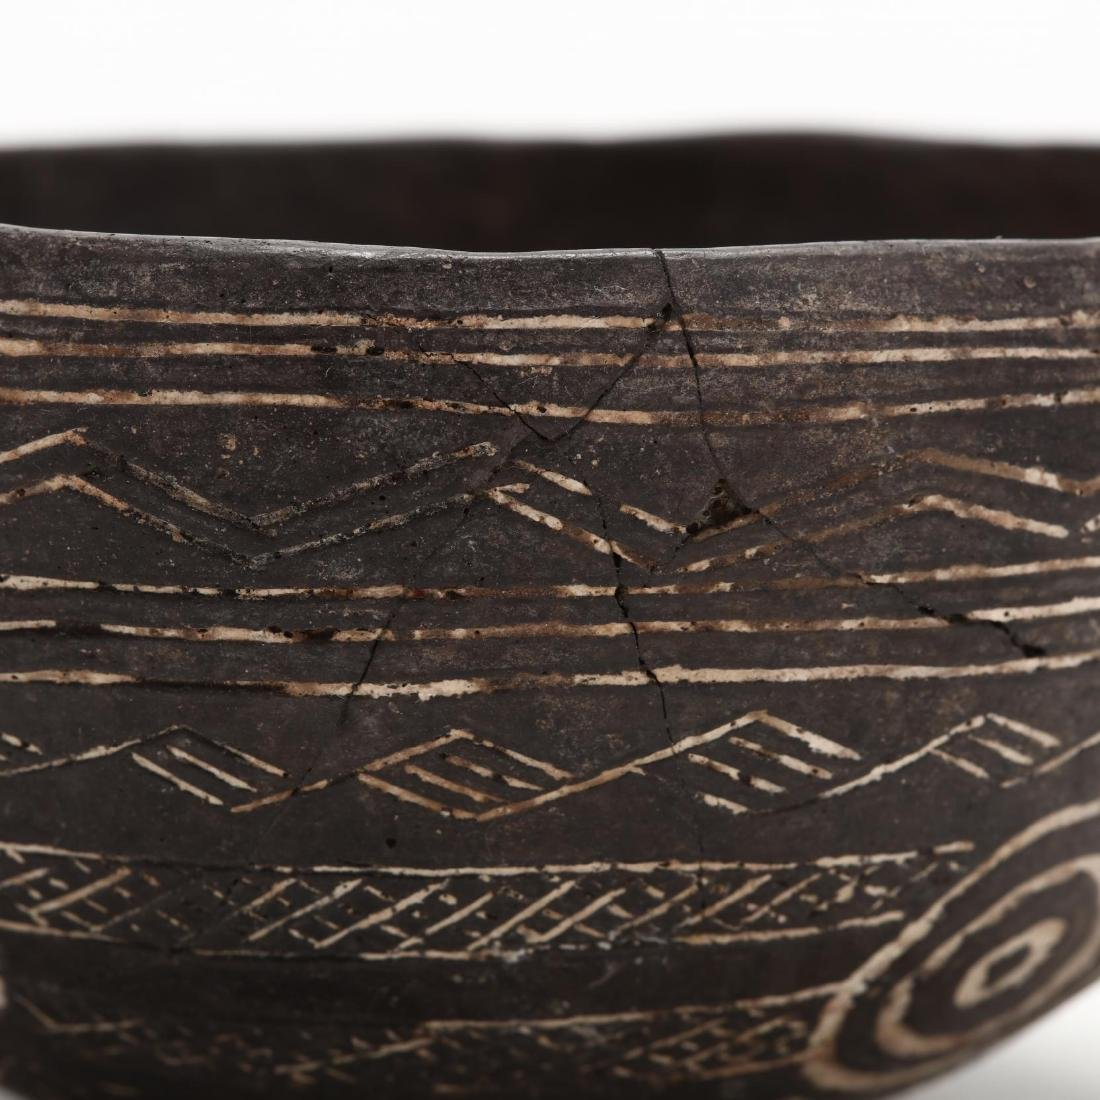 Cypriot Early Bronze Age Polished Black Ware Bowl - 3